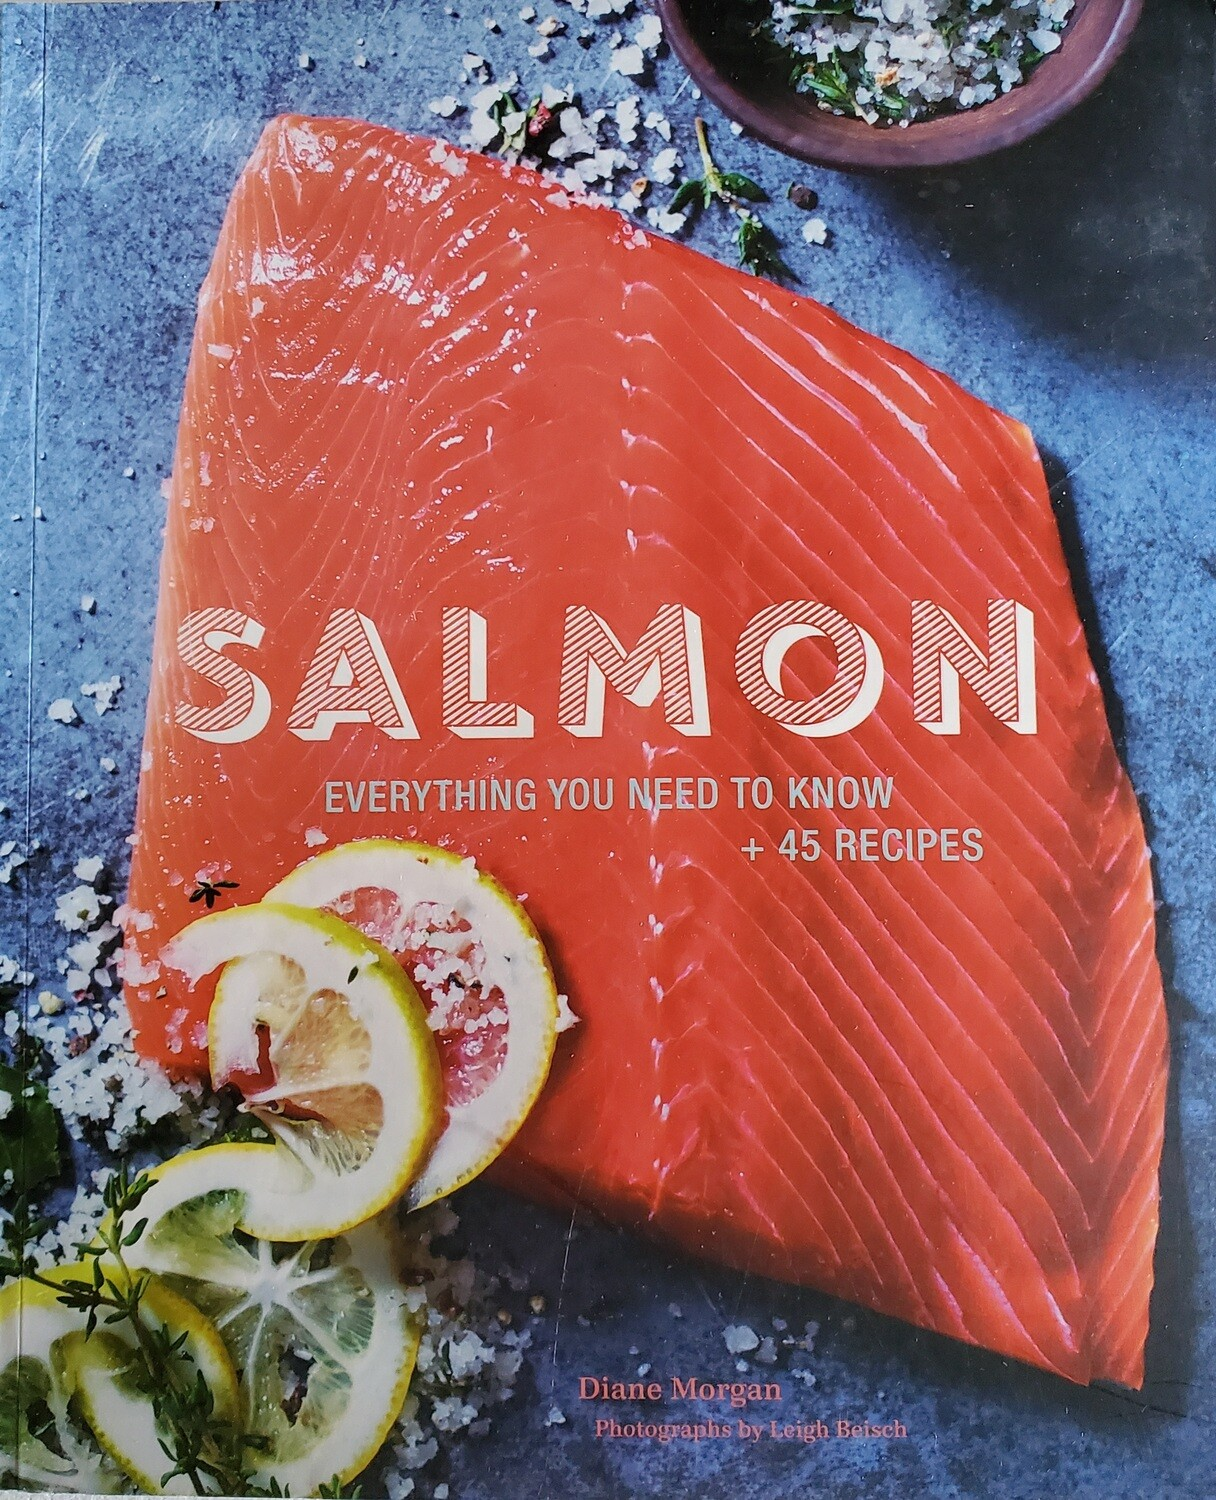 Salmon Everything You Need To Know